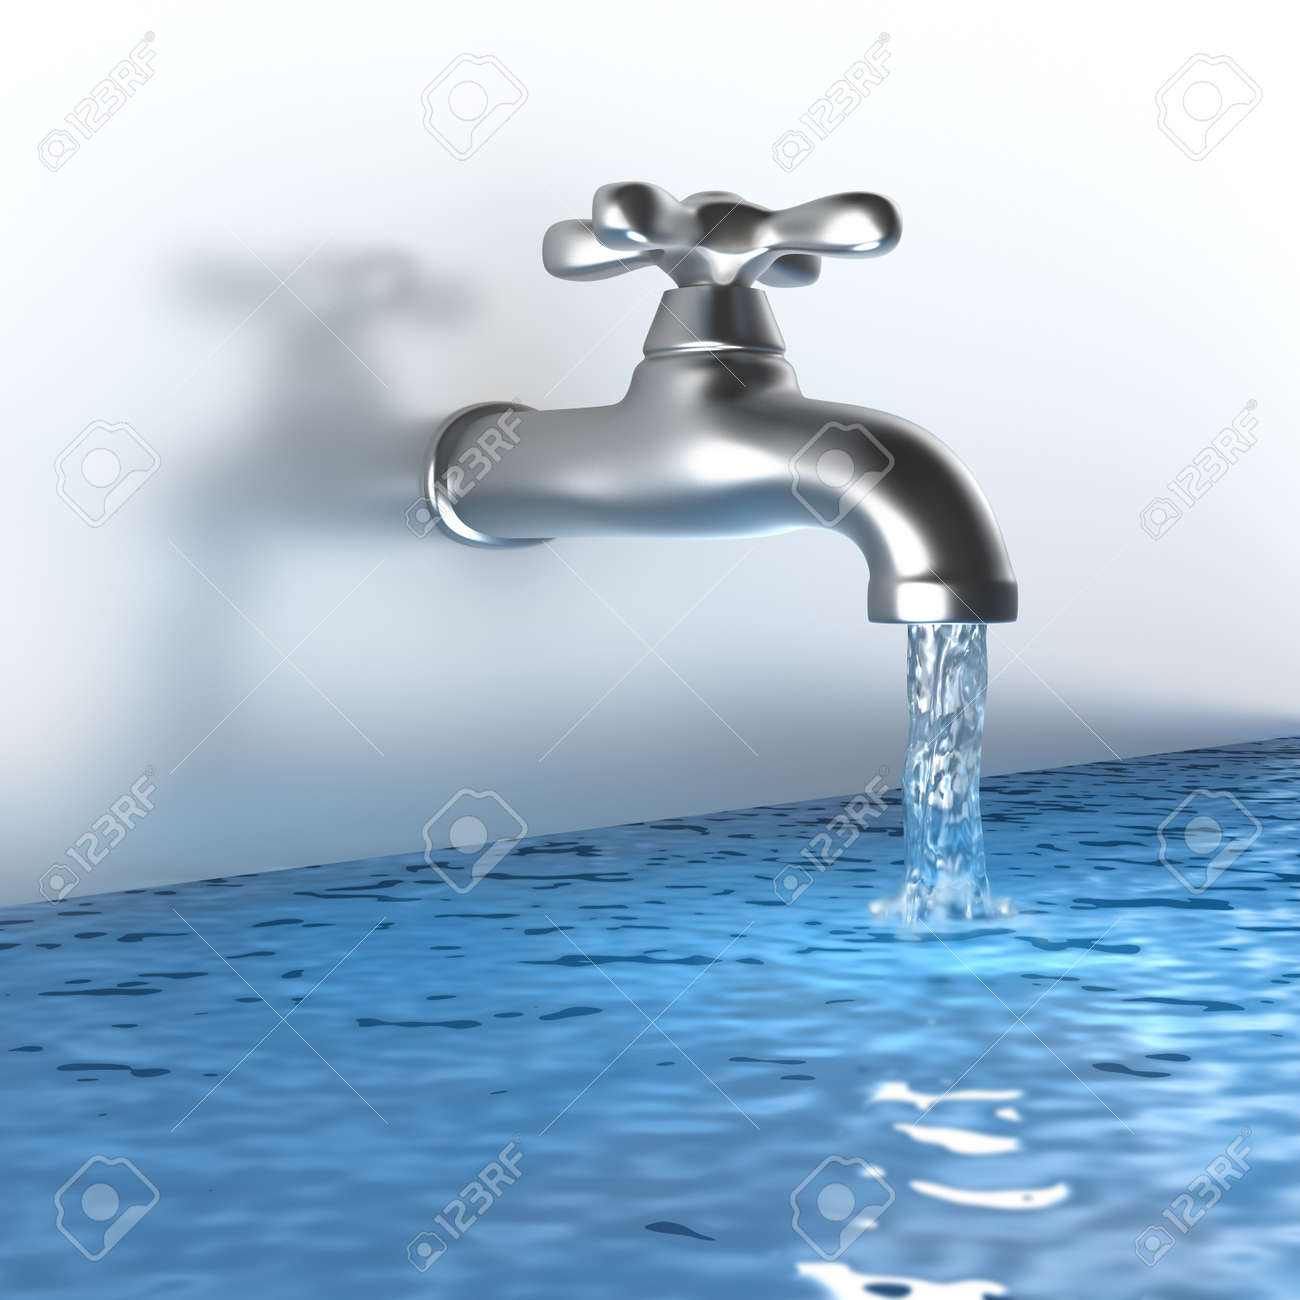 Chrome tap with a water stream Stock Photo - 11533613